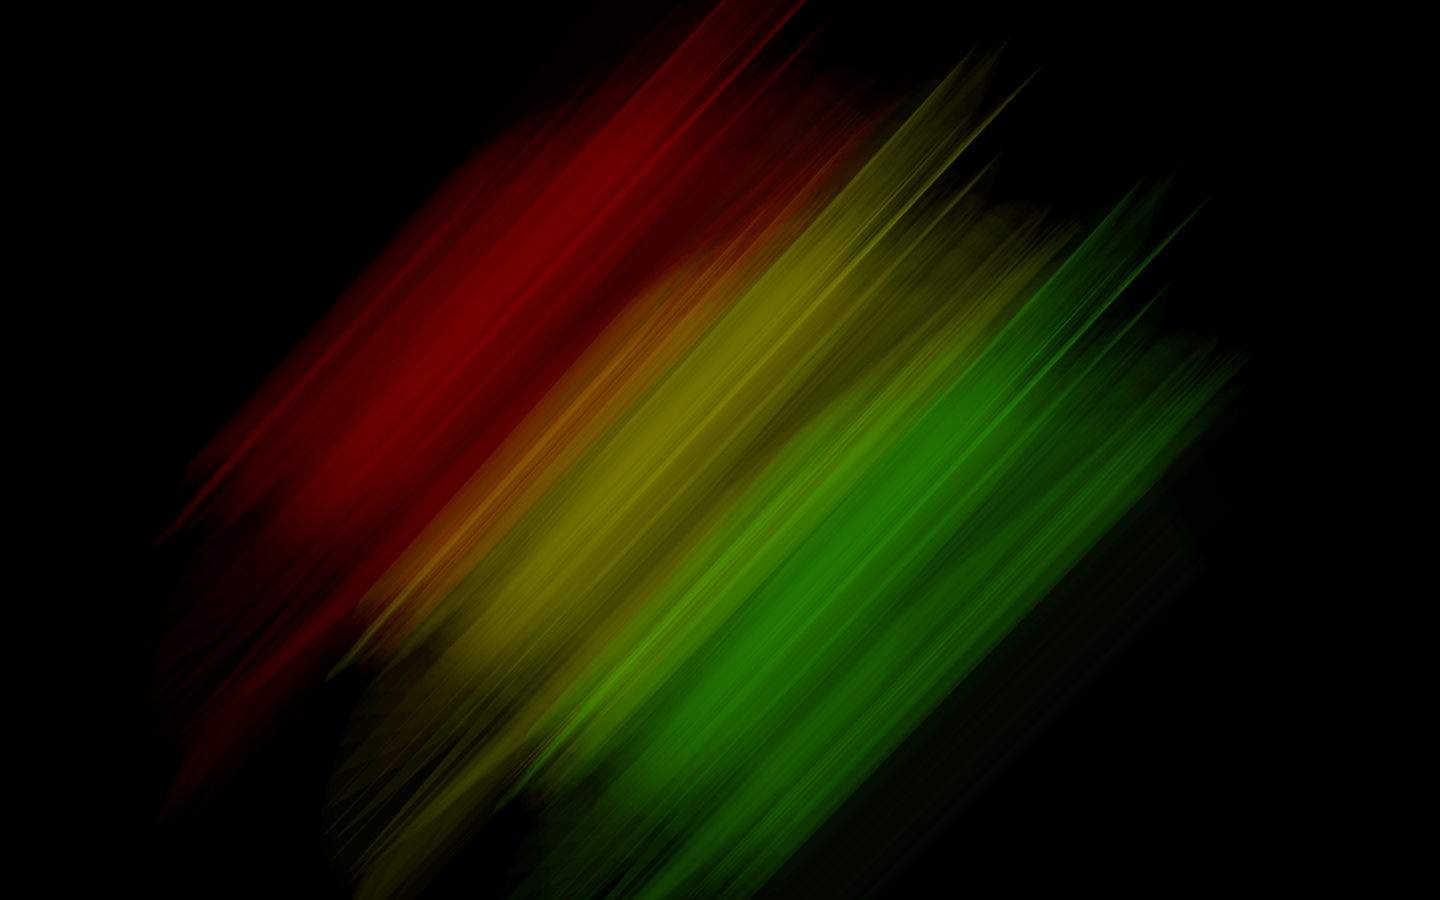 Wallpaper iphone rasta - Rastafarian Backgrounds Wallpaper Cave